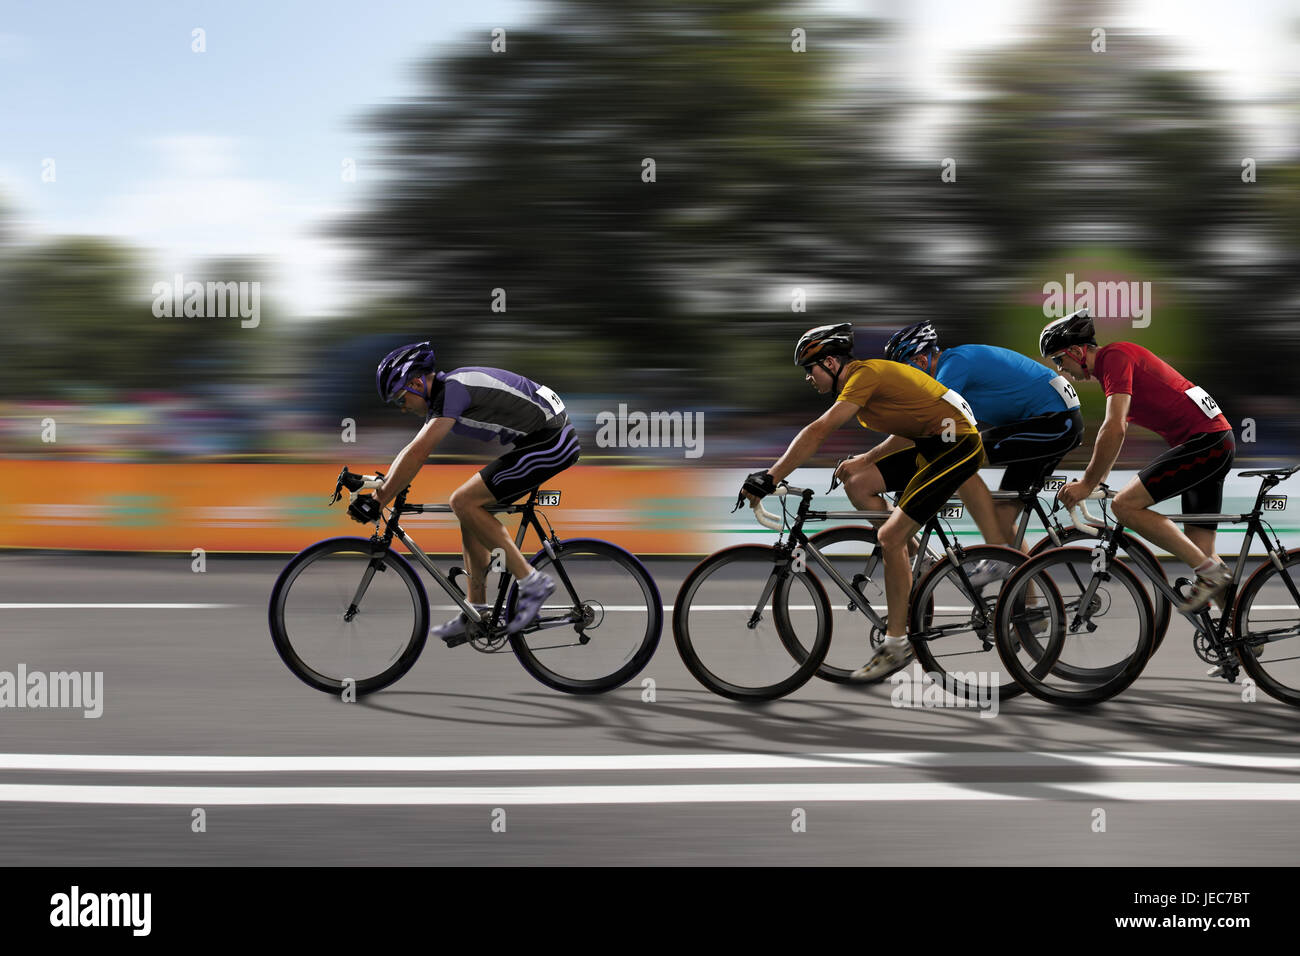 Racing cyclist, bicycle races, fight, - Stock Image